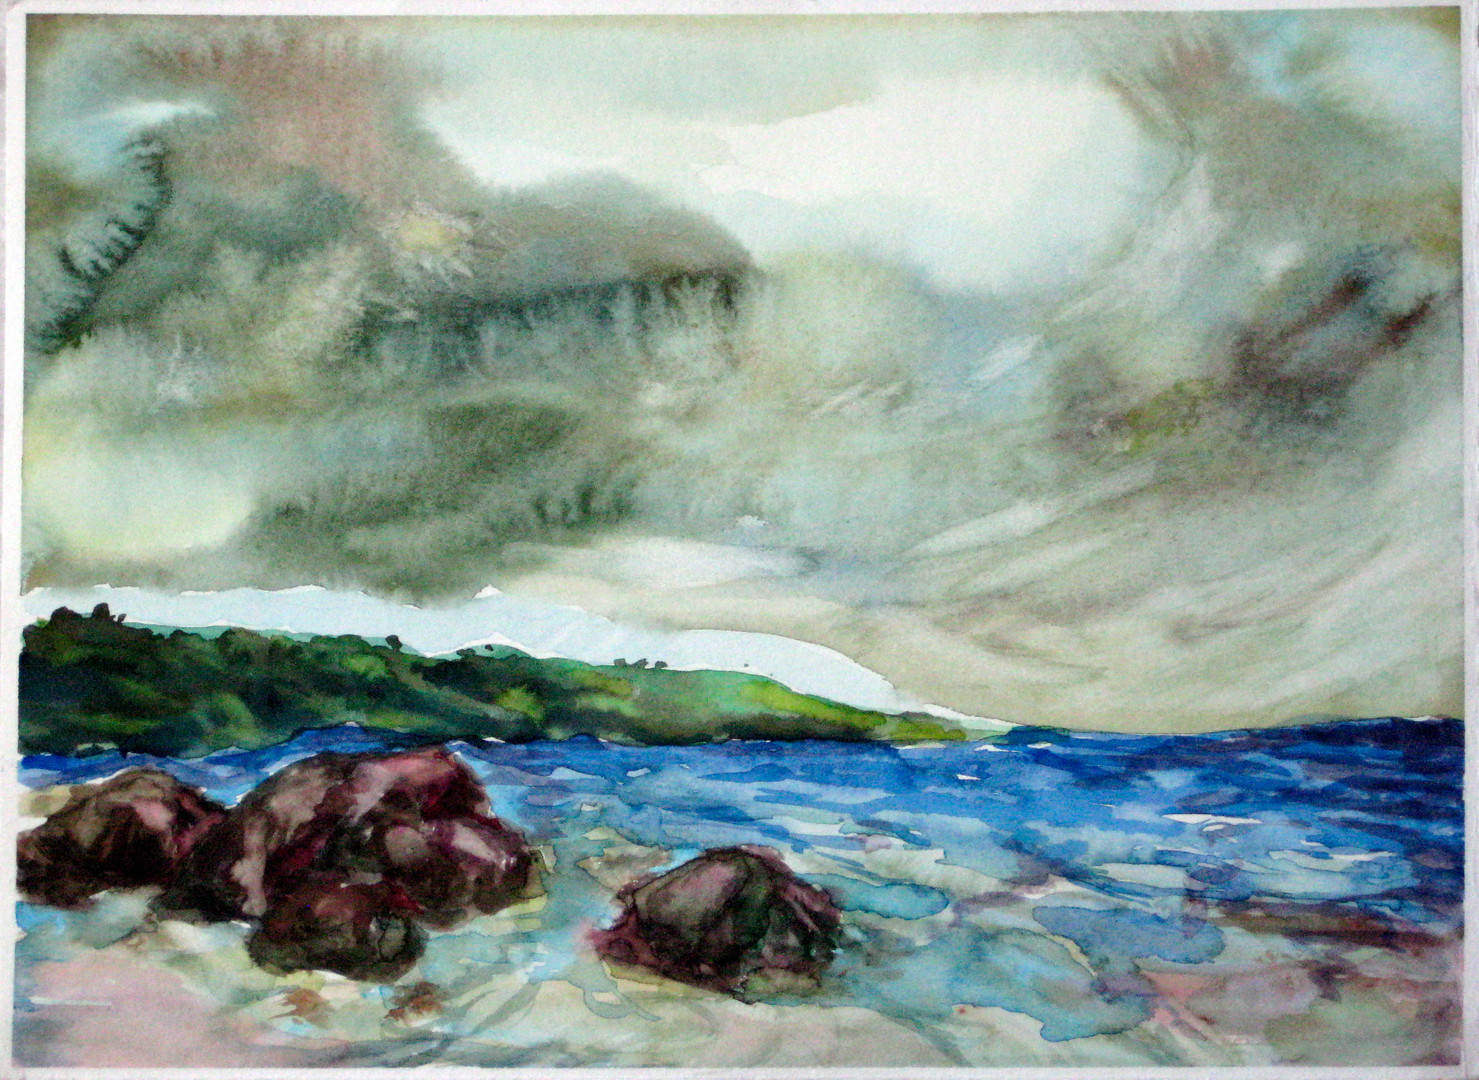 watercolor seascape 160707 1.jpg